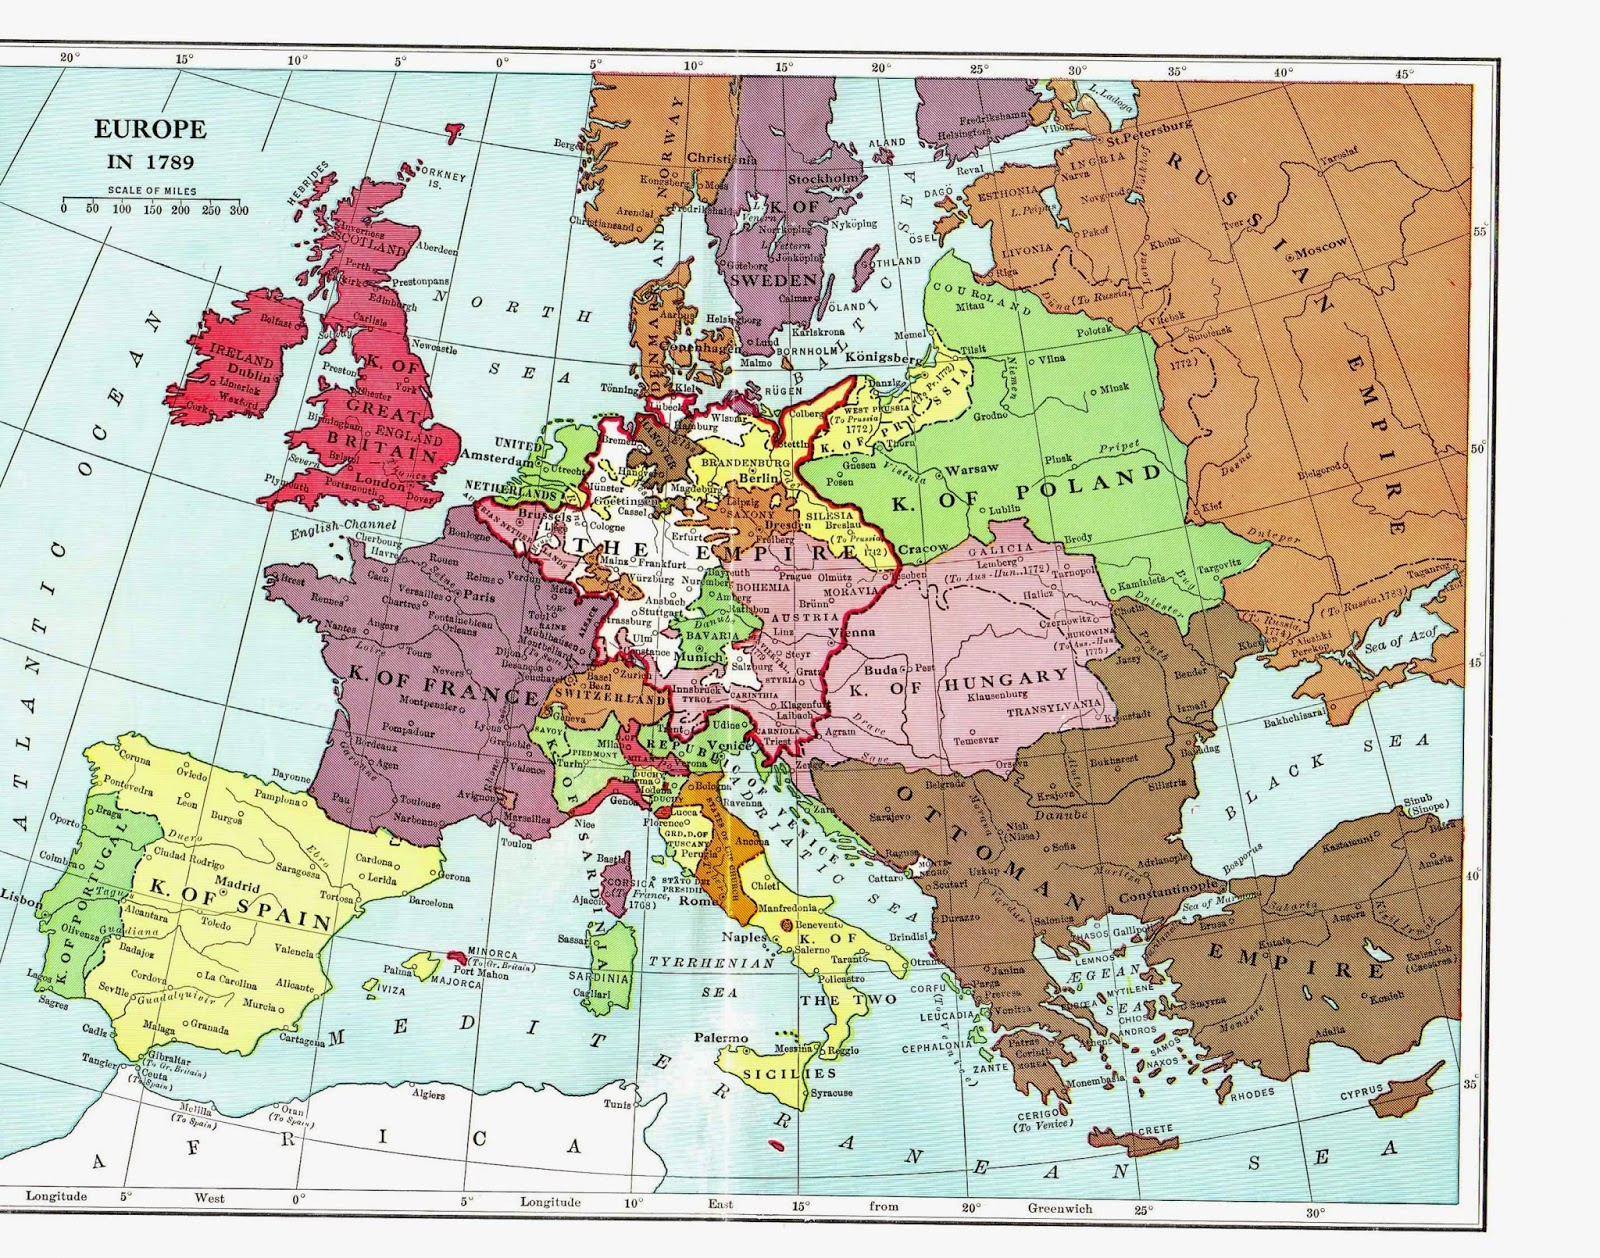 french revolution map of europe Europe on the eve of the French Revolution   Vivid Maps